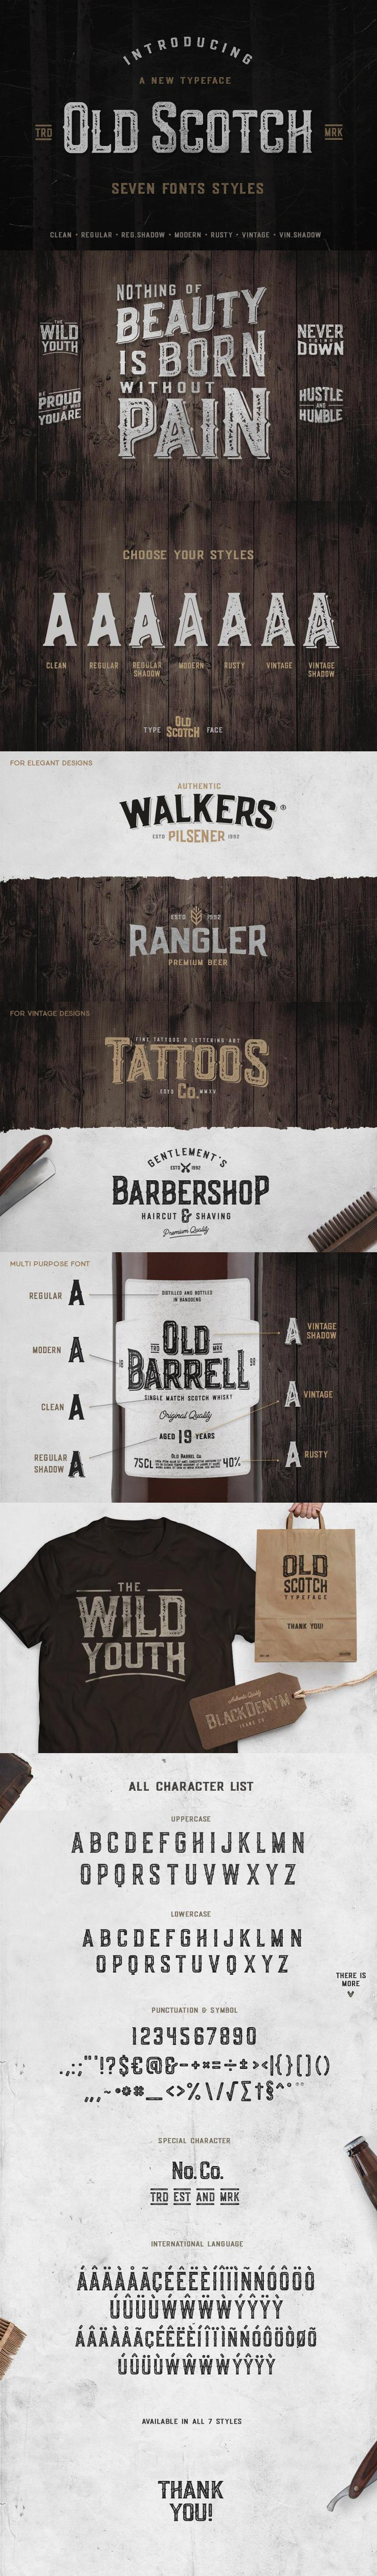 Old Scotch Typeface